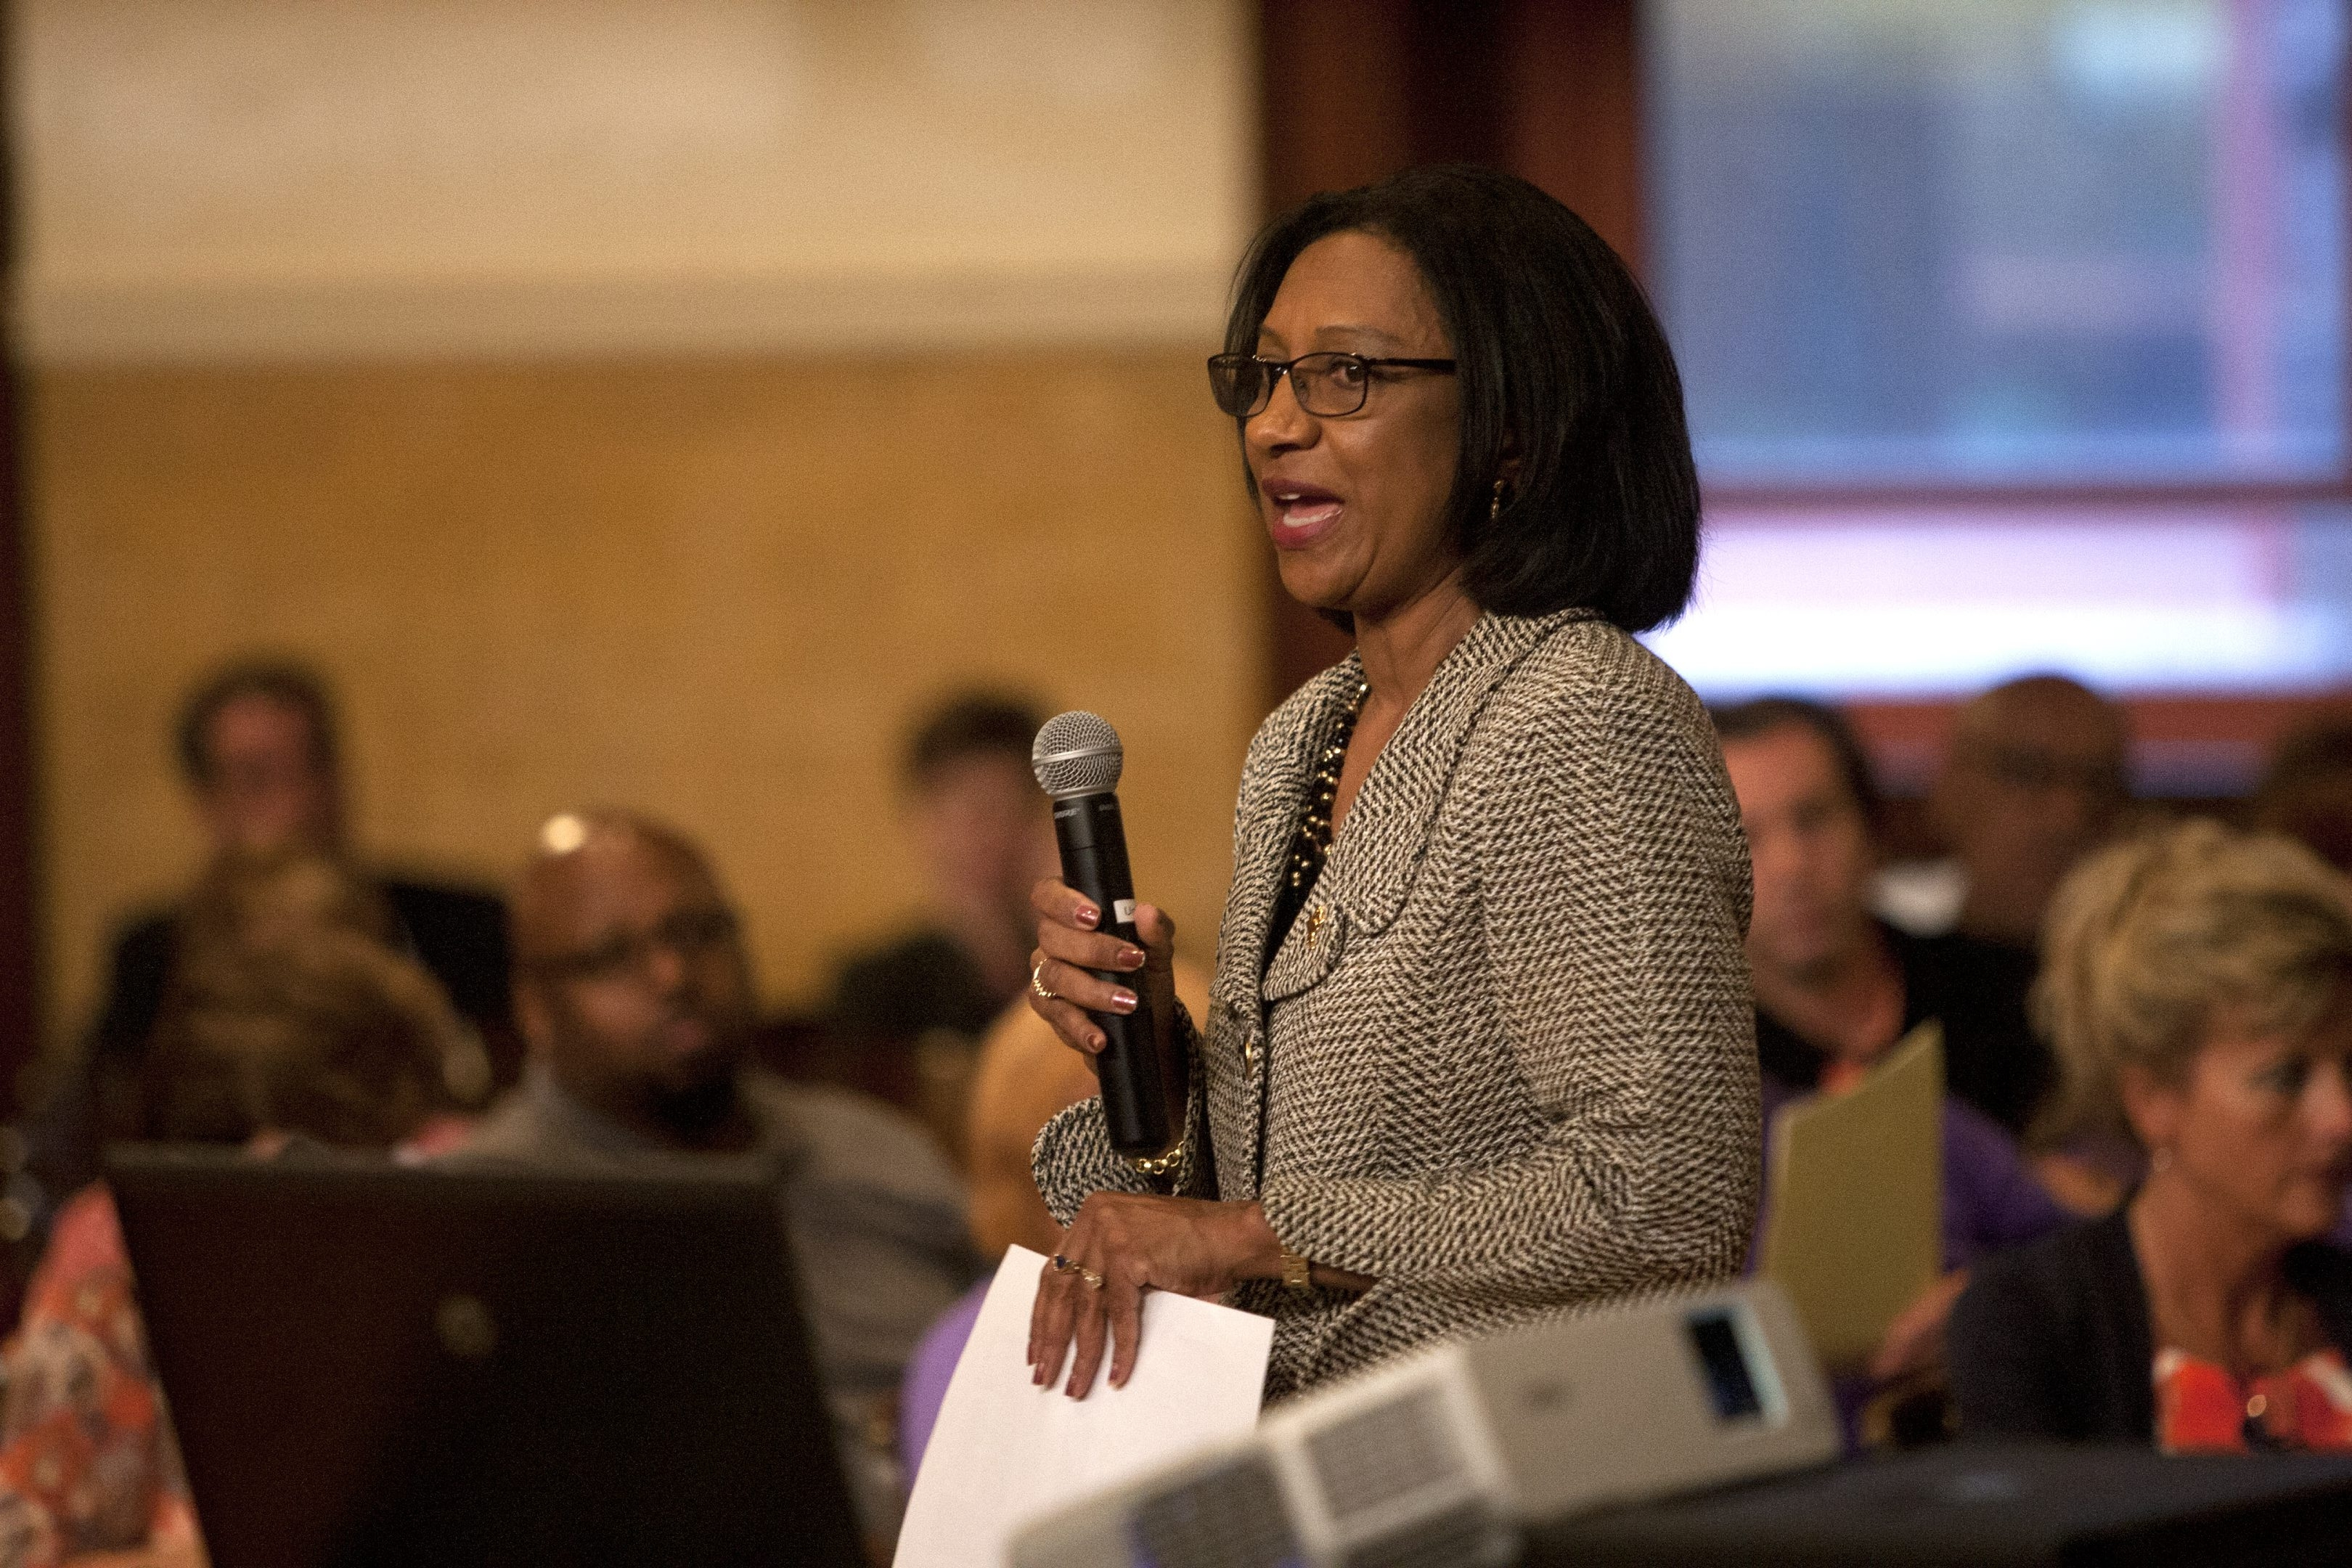 Buffalo Schools Superintendent Pamela C. Brown and the school board must make a priority of resolving problems with student transfers and breakfasts.